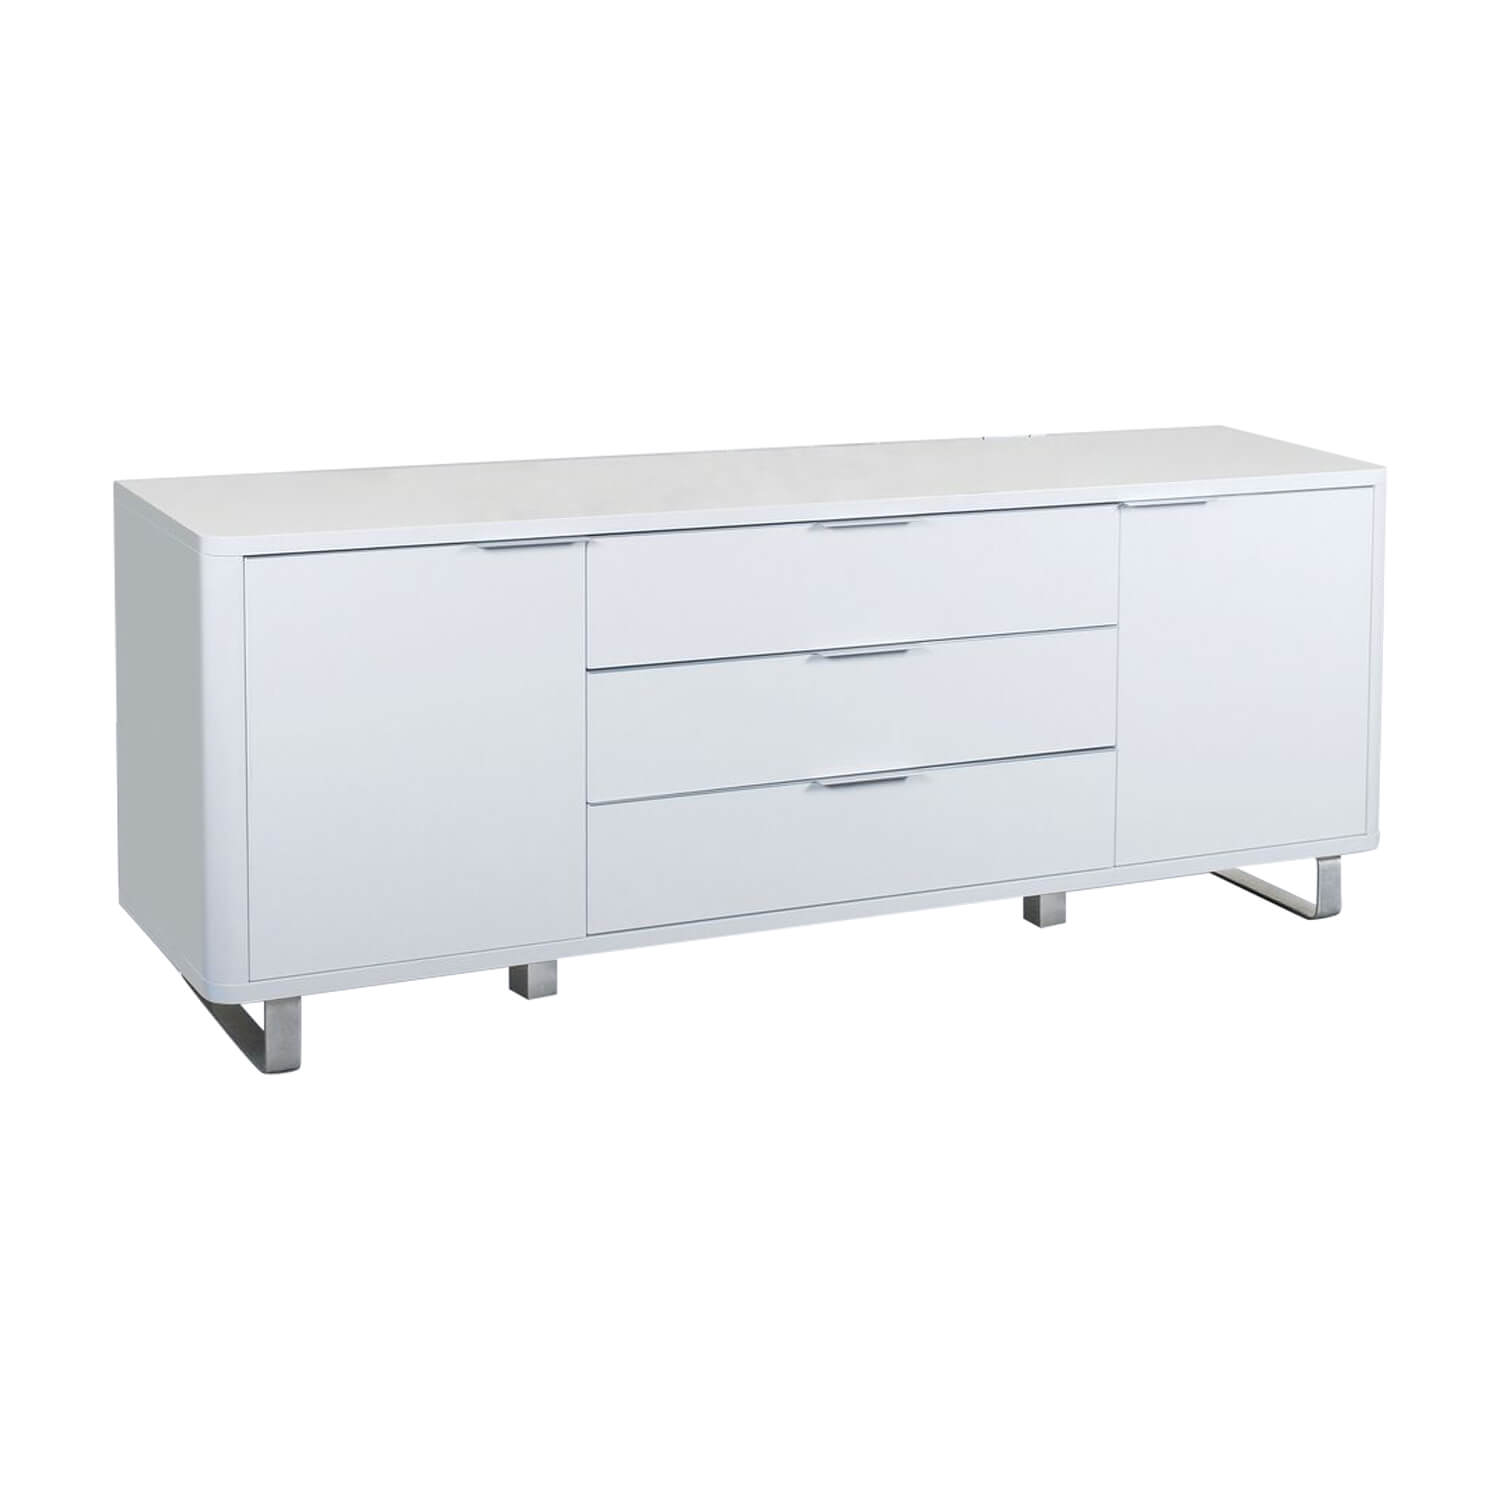 Accent Modern White Sideboard High Gloss